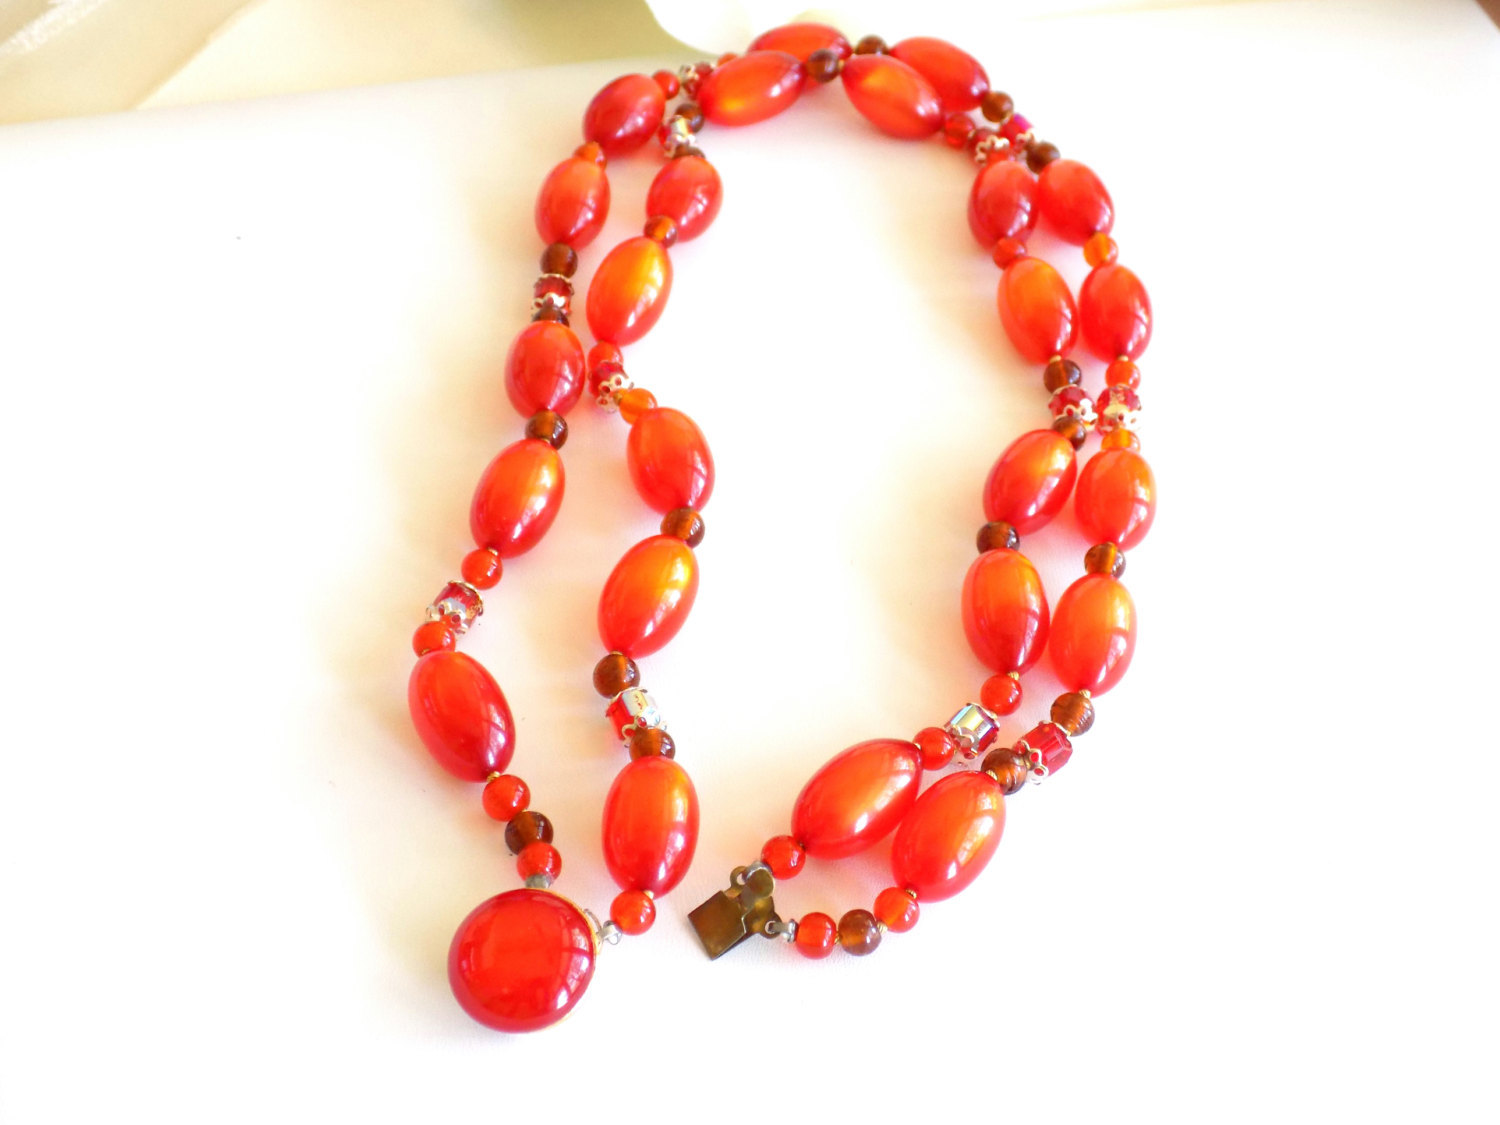 Vintage Orange Beaded Double Strand Necklace Moonglow Lucite and Faceted Beads S image 3